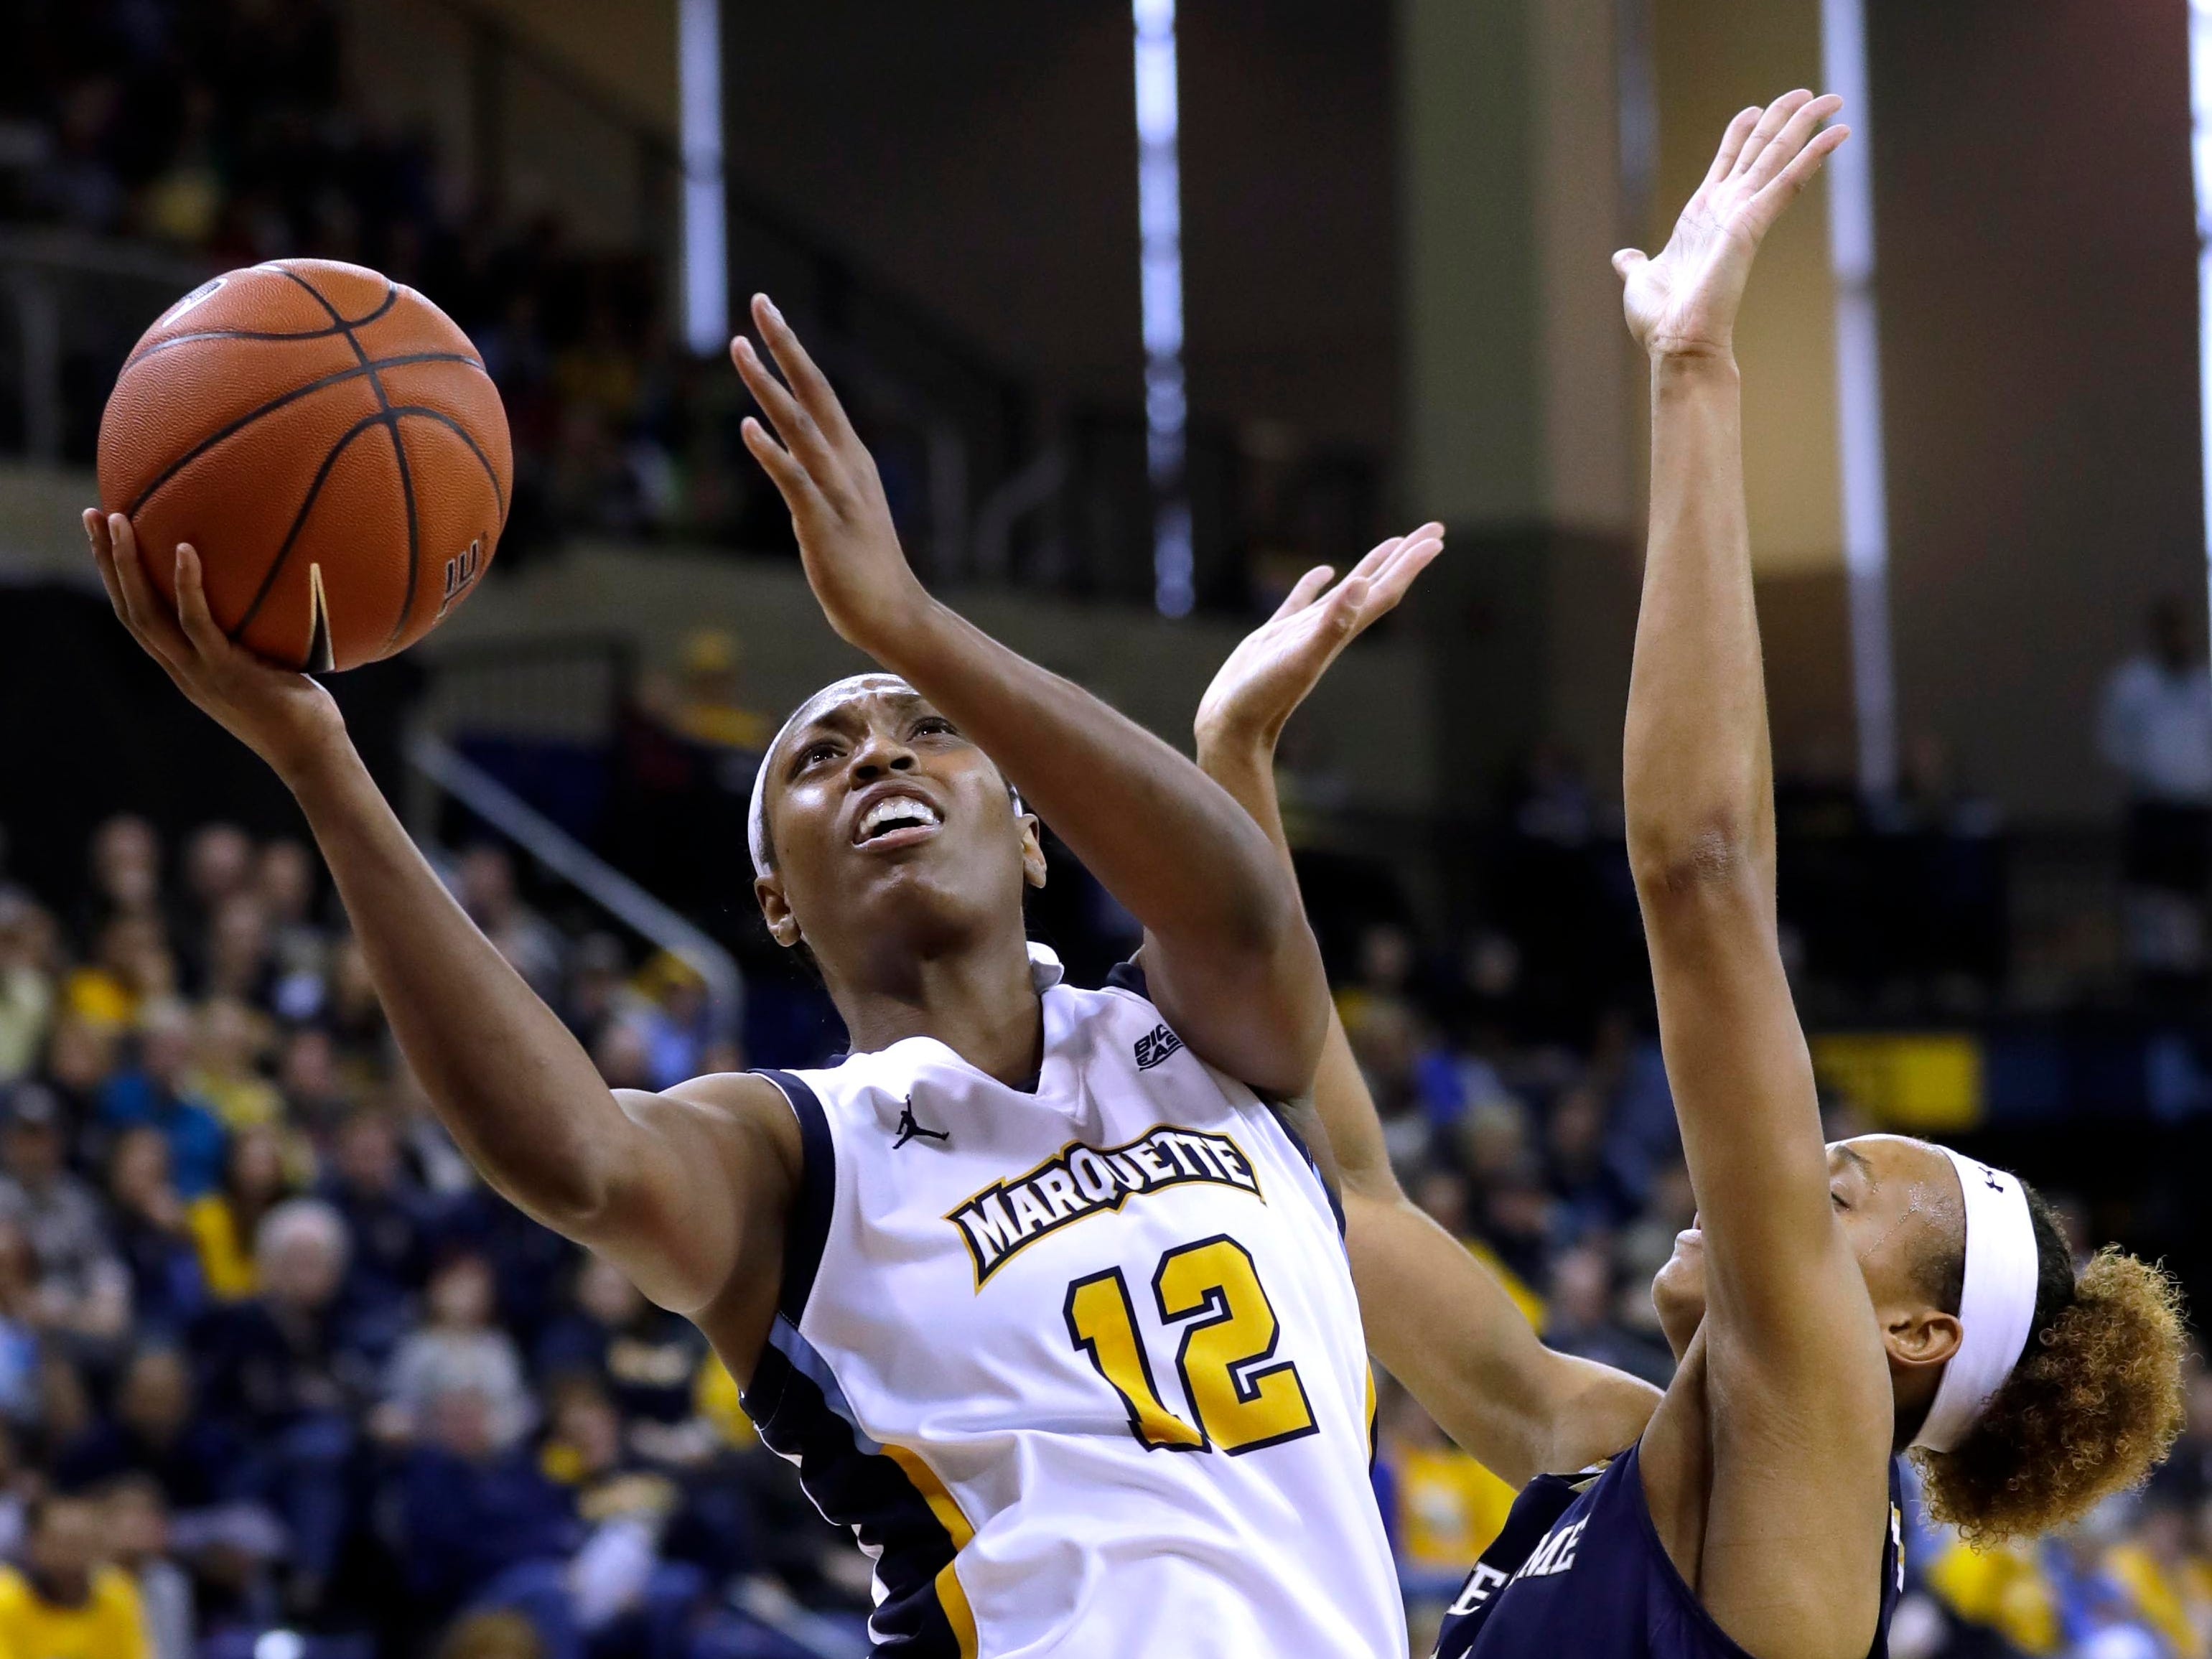 Marquette Golden Eagles forward Erika Davenport (12) scores on a drive to the basket against Notre Dame Fighting Irish forward Brianna Turner (11) during the women's basketball  game  between Marquette and Notre Dame. Notre Dame, the the defending national champion, which won the game 87-63, is led by former DSHA star Arike Ogunbowale. MU is also a top-25 team expected to win the Big East.   MILWAUKEE JOURNAL SENTINEL/RICK WOOD ORG XMIT: 20097356A